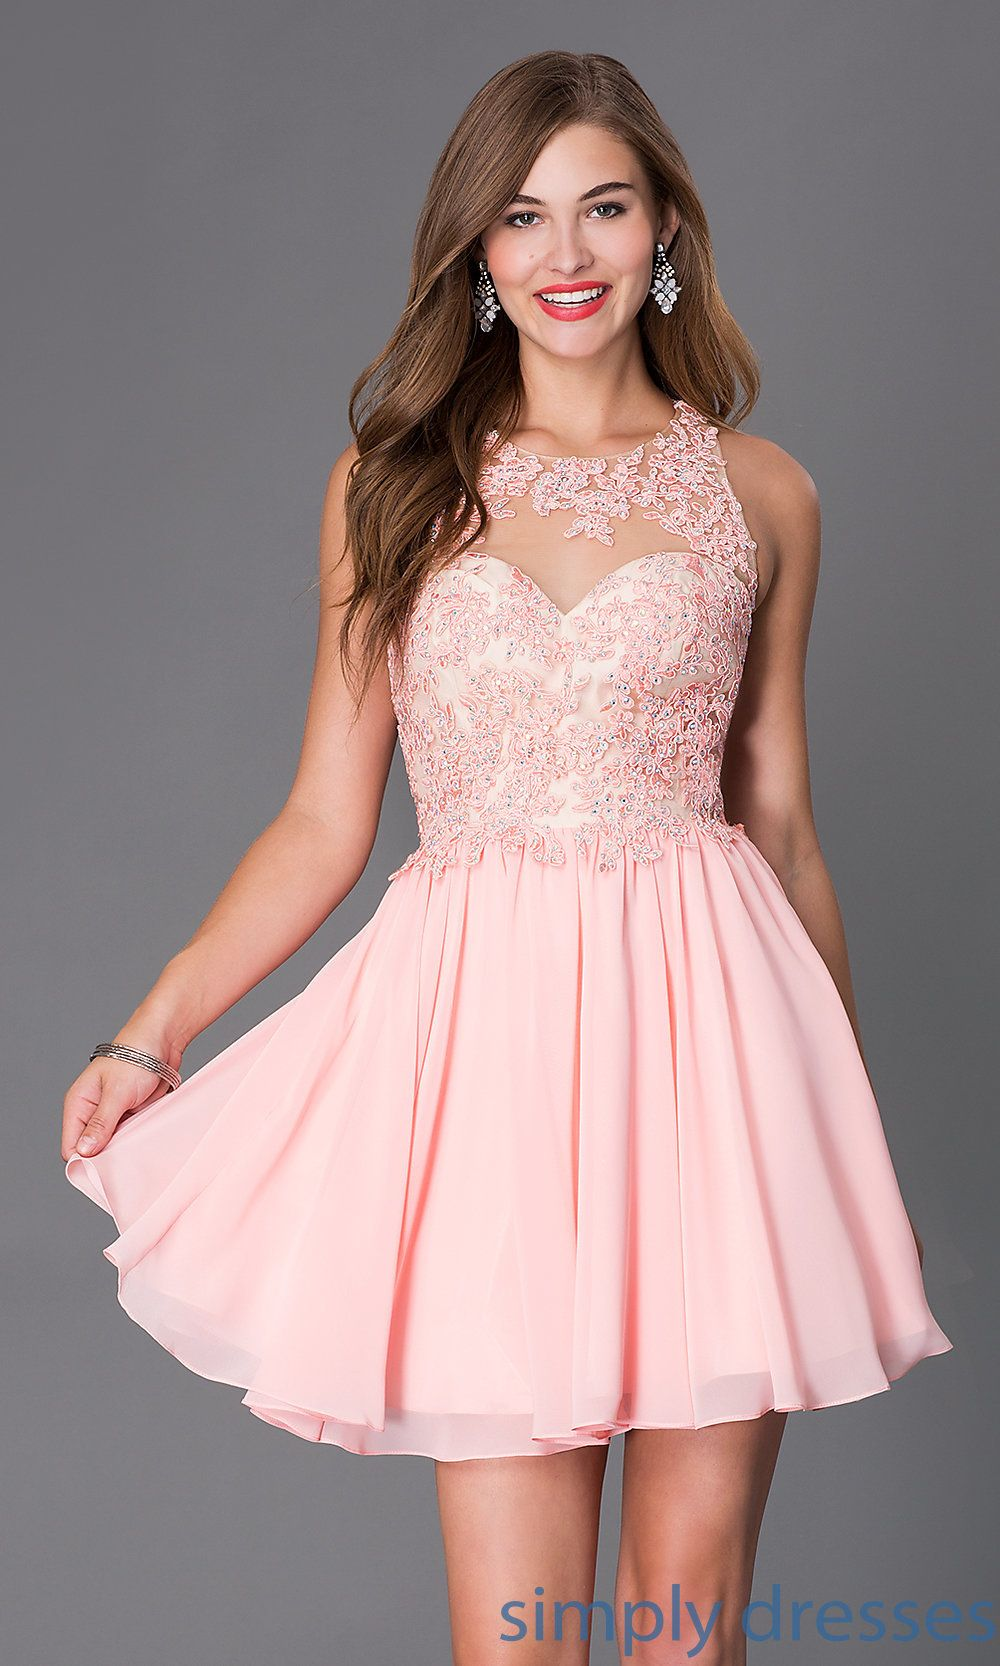 Dq short sleeveless dress with beaded lace bodice lace